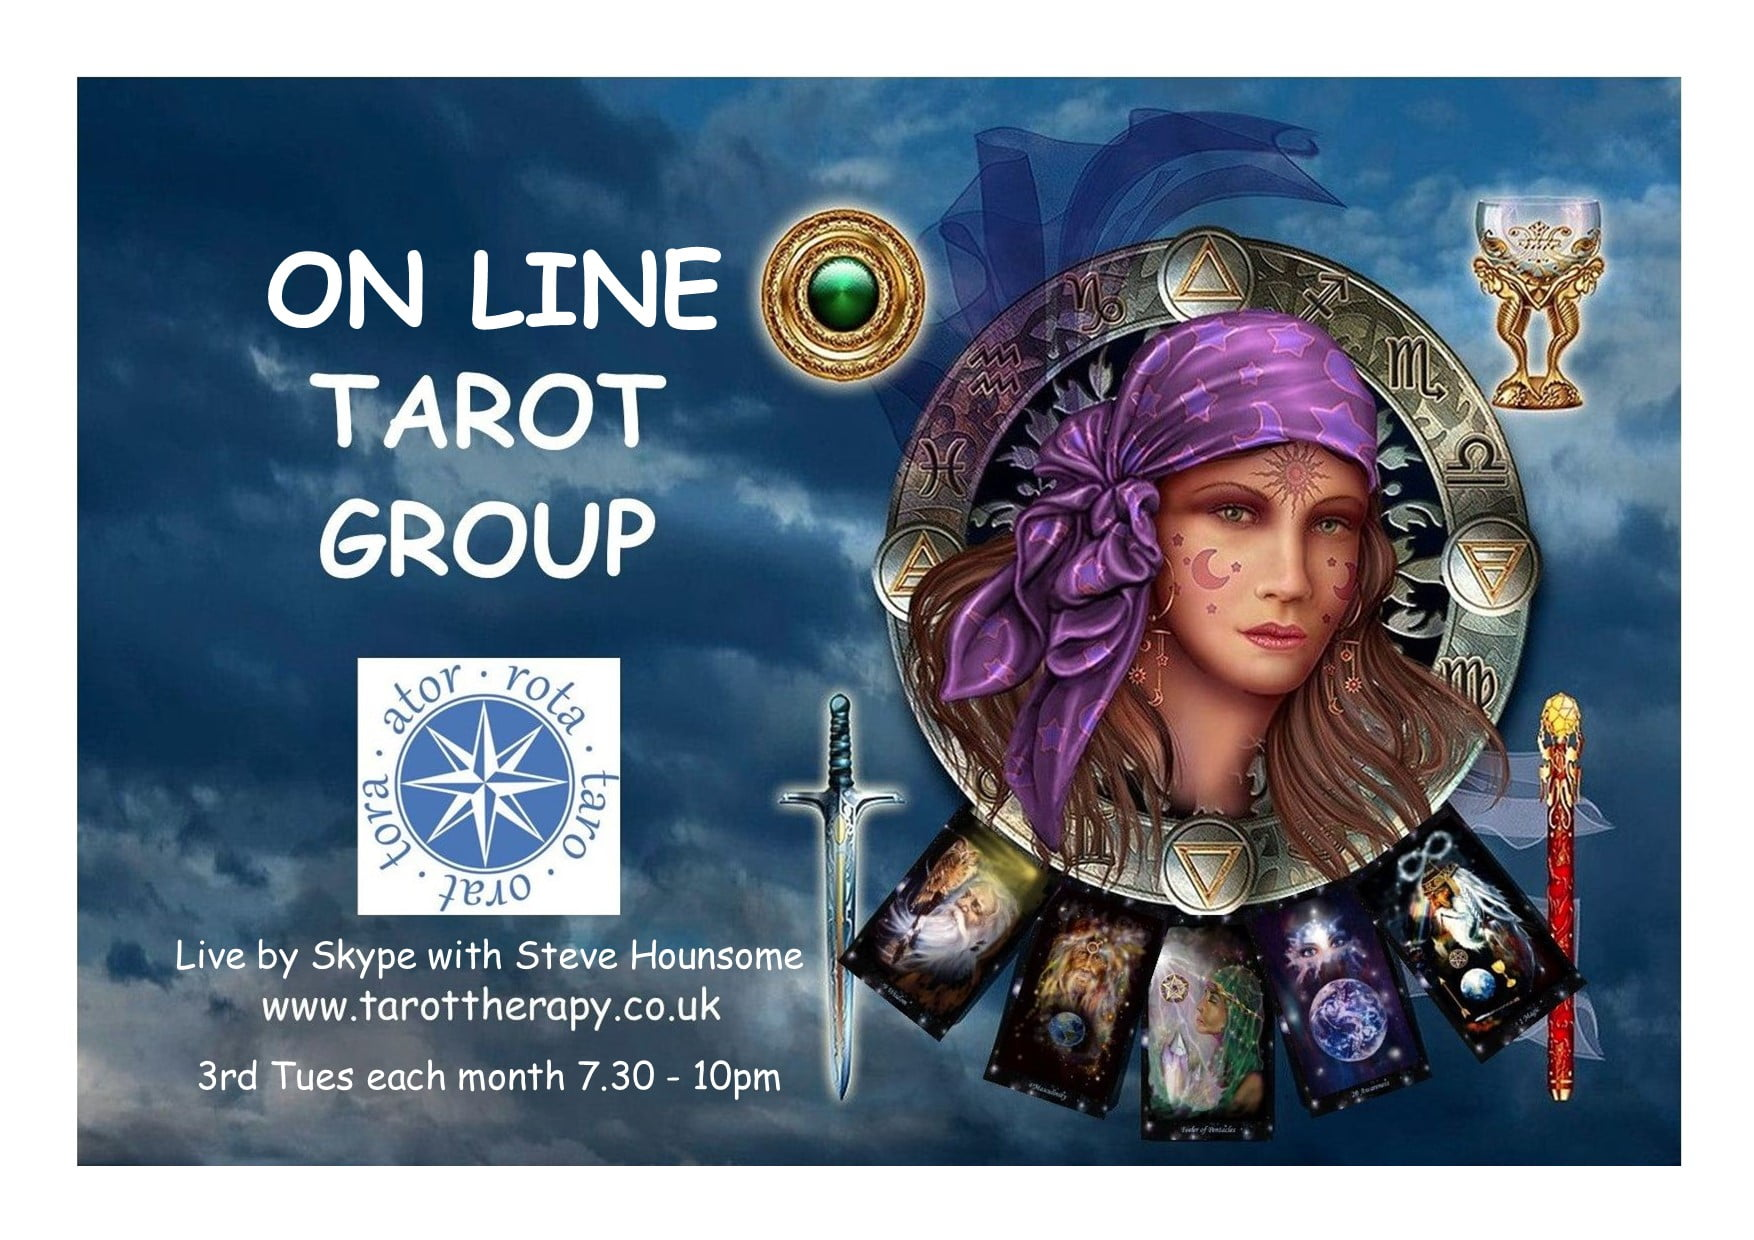 Image of a lady reading the Tarot with wording Tarot Group in the picture